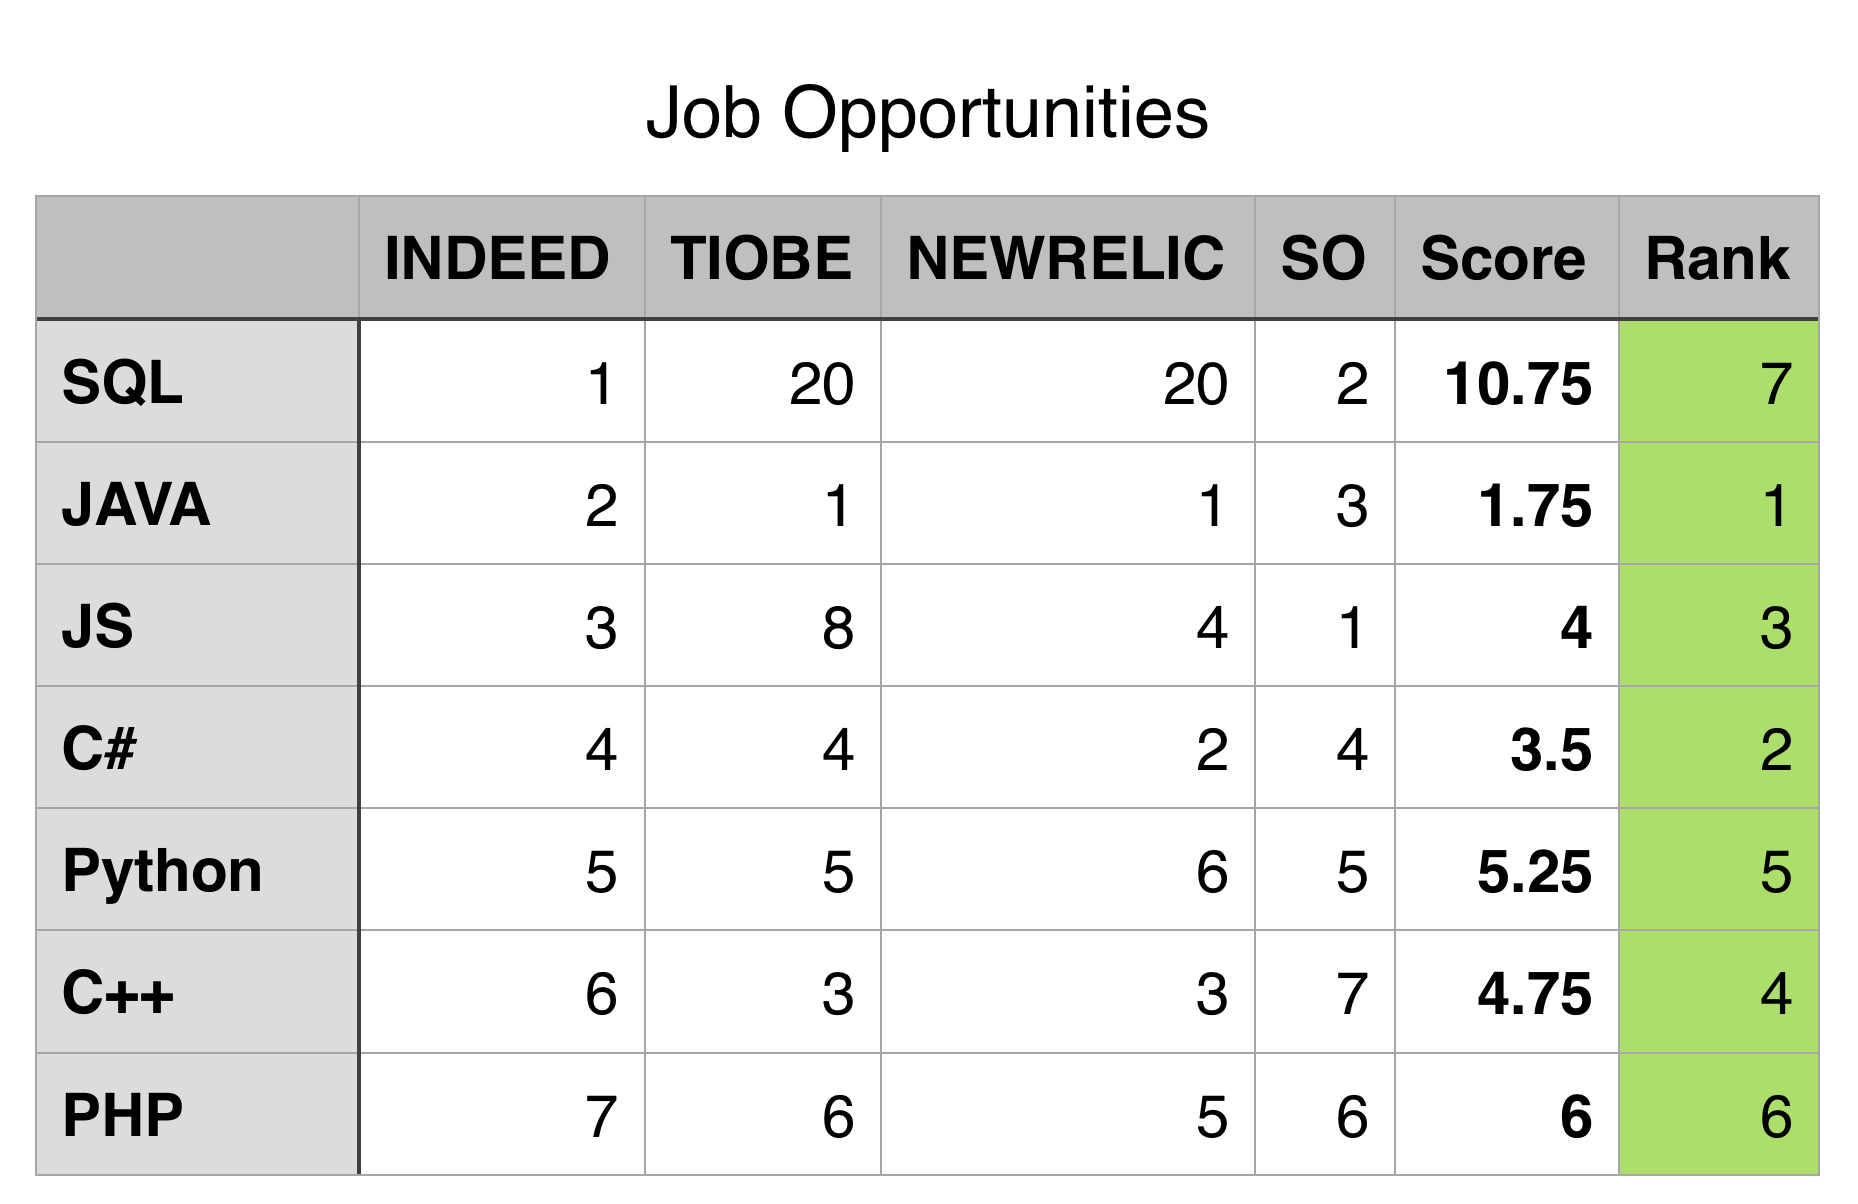 Job opportunities by programming language.